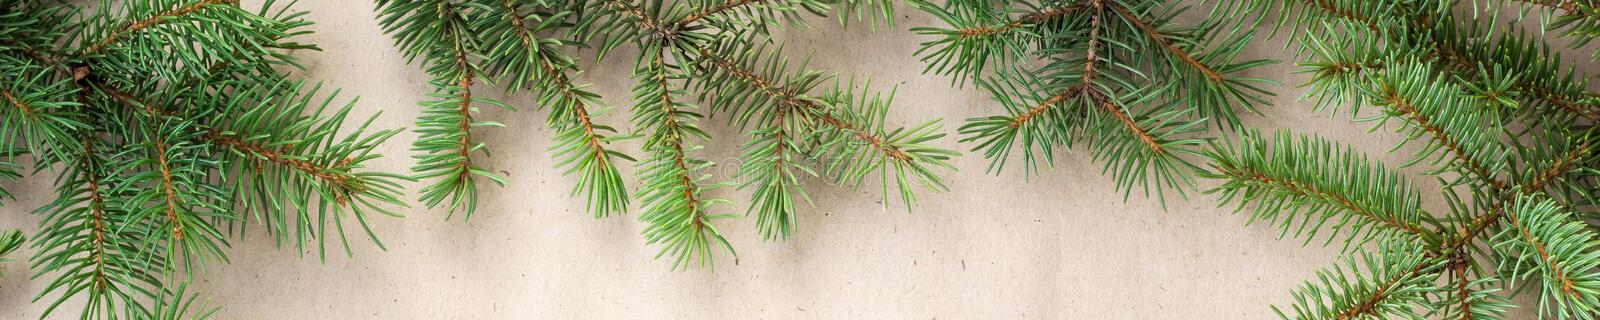 Banner of fir branches border on light rustic background, good for christmas backdrop.  royalty free stock photo